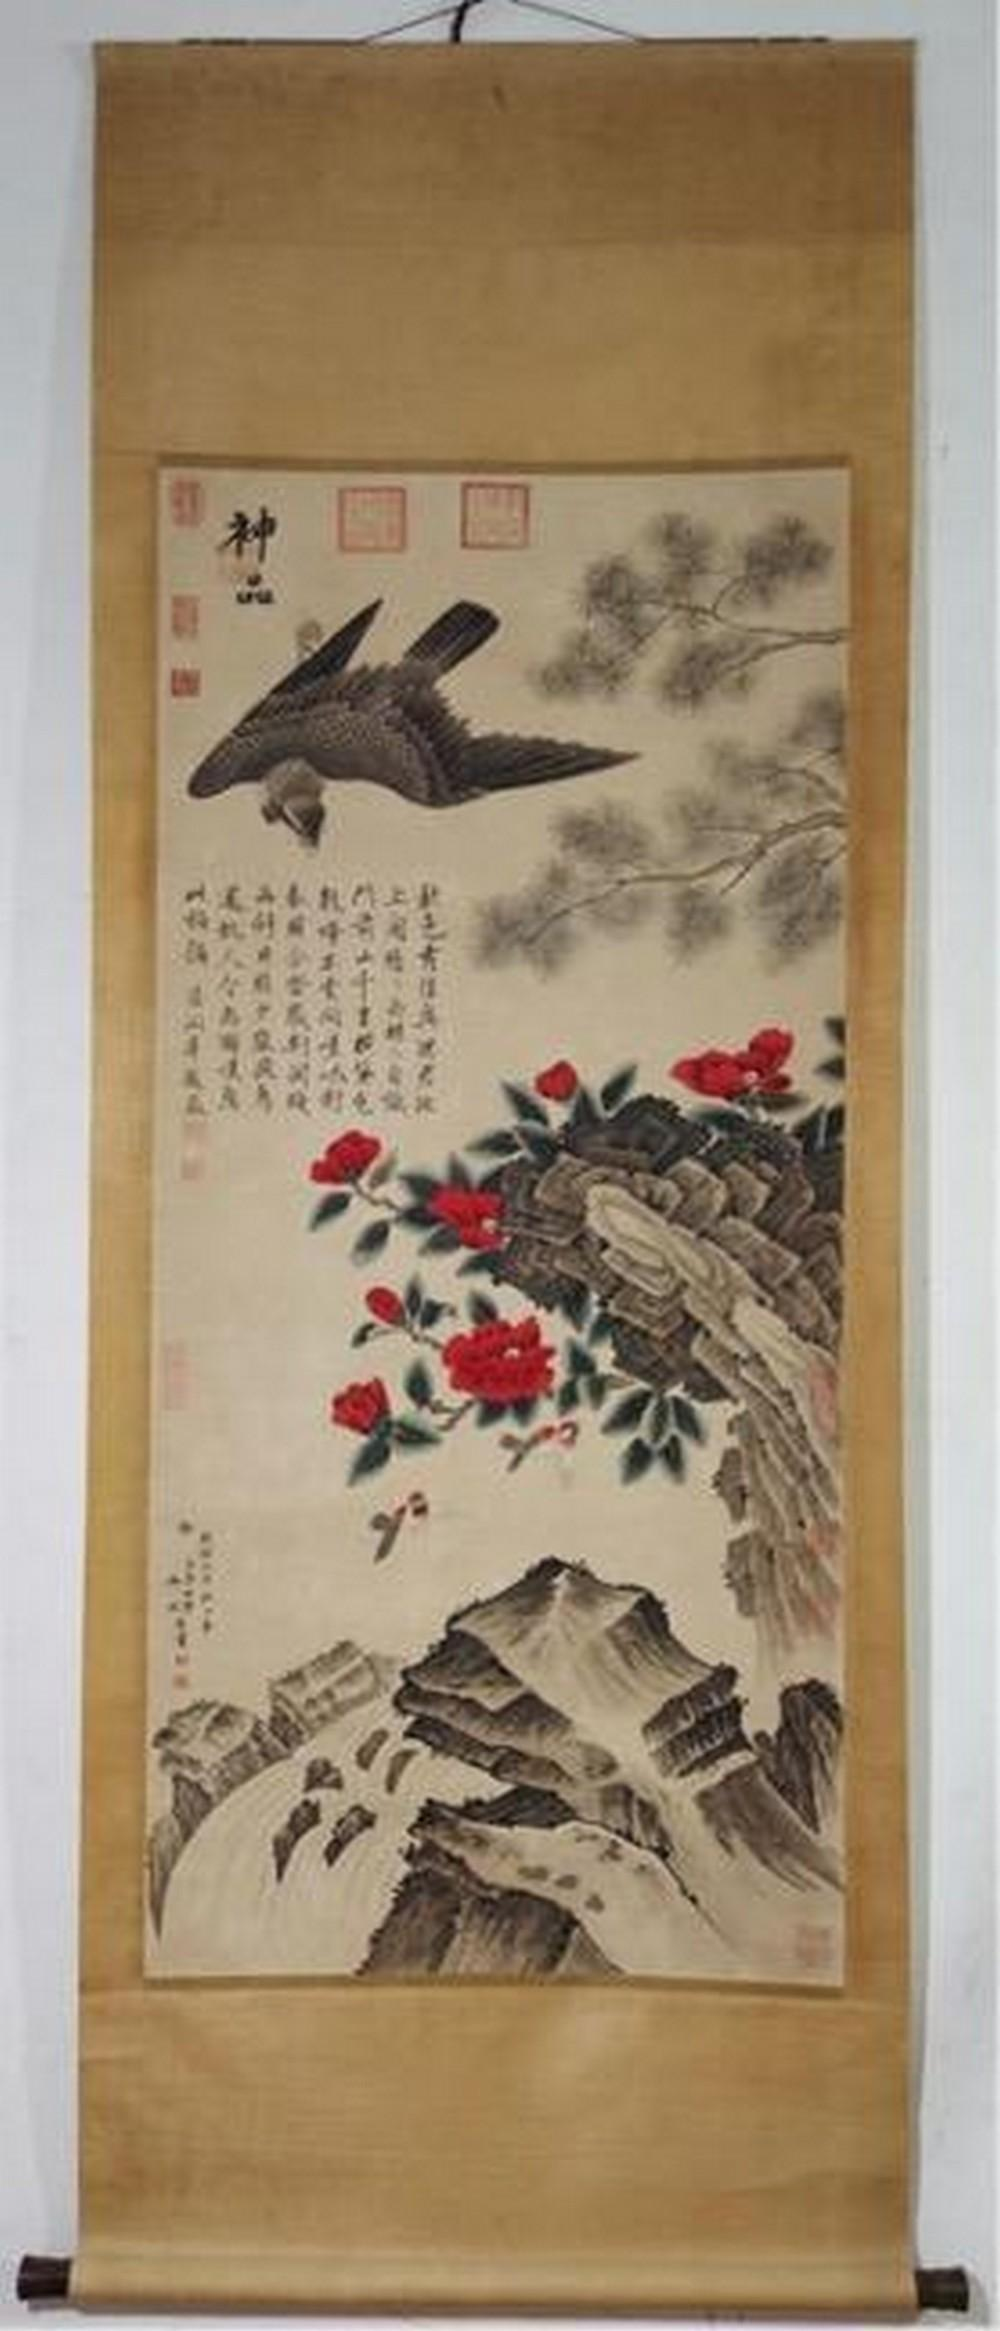 Birds flowers paper scroll by Lang Shining and Leng Mei